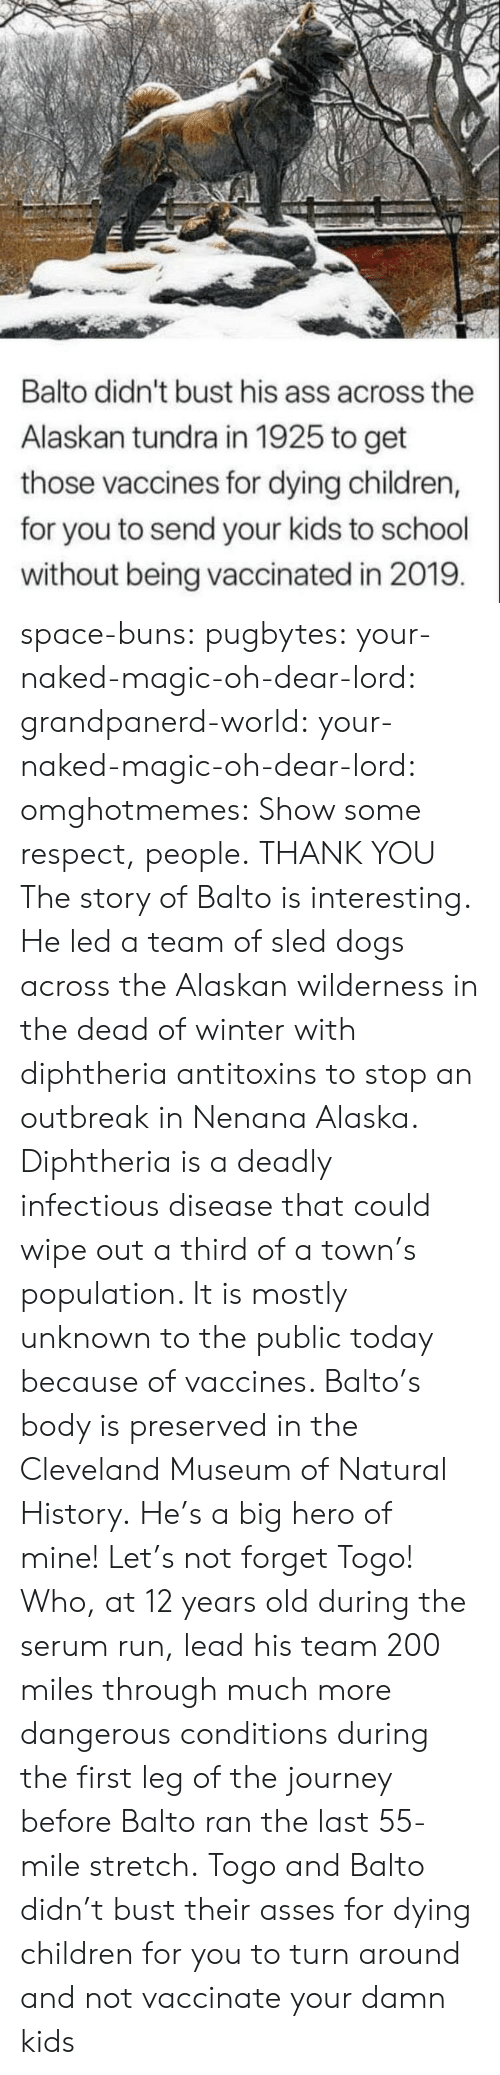 Ass, Bailey Jay, and Children: Balto didn't bust his ass across the  Alaskan tundra in 1925 to get  those vaccines for dying children,  for you to send your kids to school  without being vaccinated in 2019 space-buns: pugbytes:   your-naked-magic-oh-dear-lord:  grandpanerd-world:   your-naked-magic-oh-dear-lord:  omghotmemes: Show some respect, people.  THANK YOU   The story of Balto is interesting. He led a team of sled dogs across the Alaskan wilderness in the dead of winter with diphtheria antitoxins to stop an outbreak in Nenana Alaska. Diphtheria is a deadly infectious disease that could wipe out a third of a town's population. It is mostly unknown to the public today because of vaccines. Balto's body is preserved in the Cleveland Museum of Natural History.   He's a big hero of mine!   Let's not forget Togo! Who, at 12 years old during the serum run, lead his team 200 miles through much more dangerous conditions during the first leg of the journey before Balto ran the last 55-mile stretch.   Togo and Balto didn't bust their asses for dying children for you to turn around and not vaccinate your damn kids